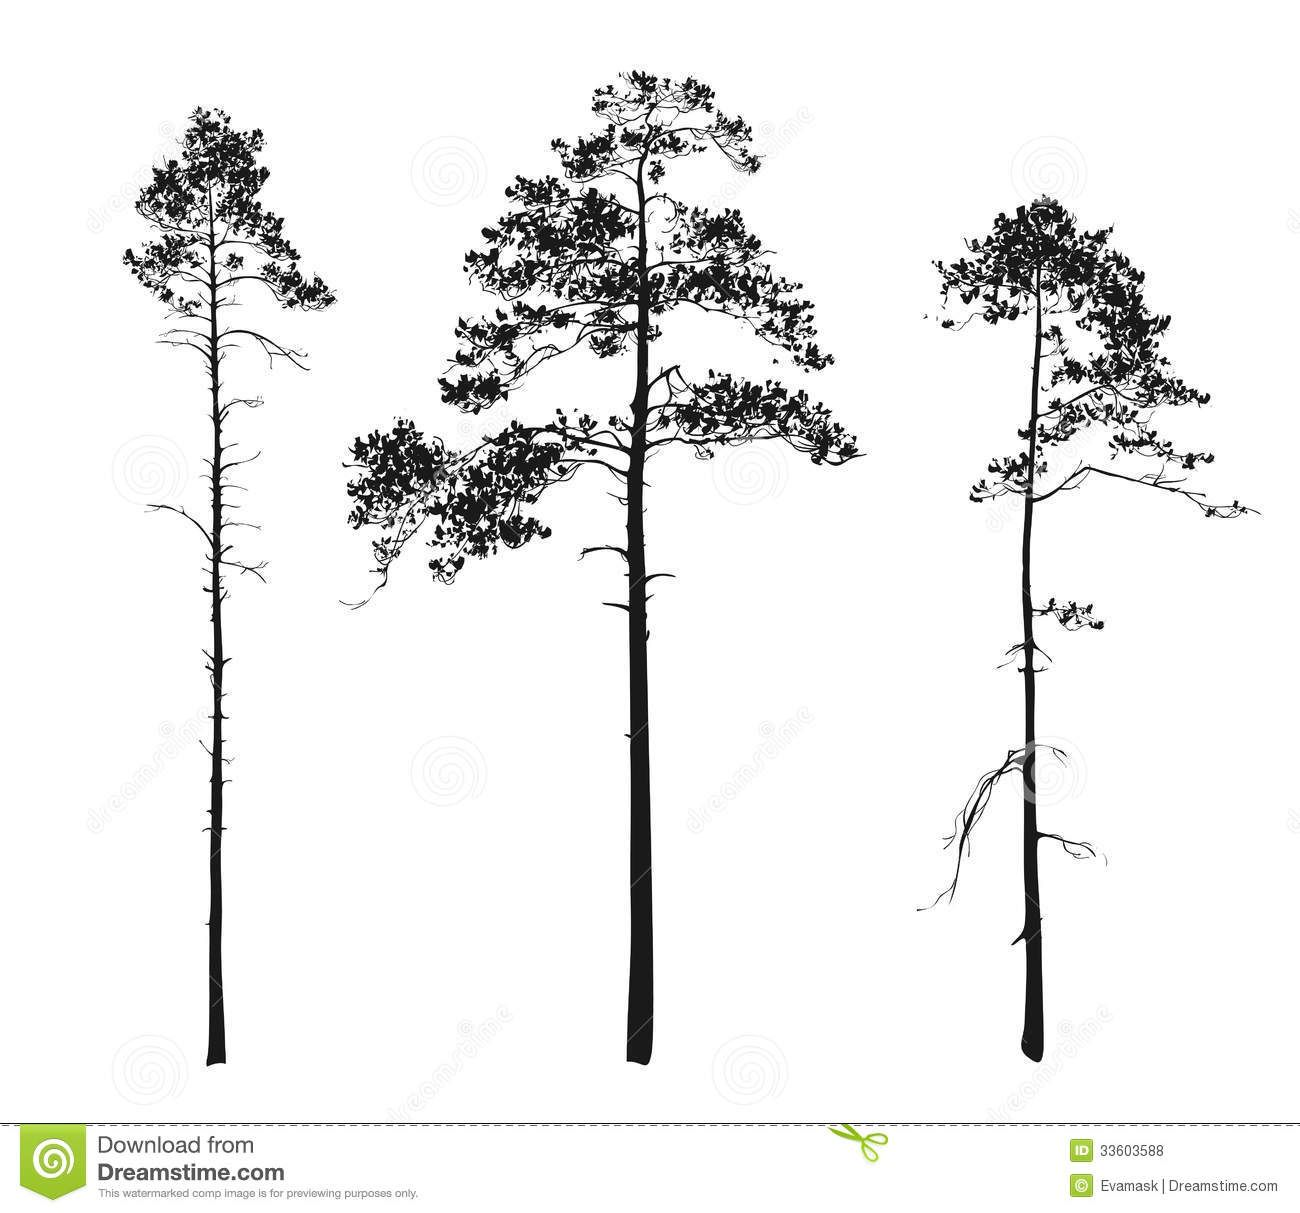 pine tree silhouette - Google Search | Tattoo | Pinterest | Bonsai ...